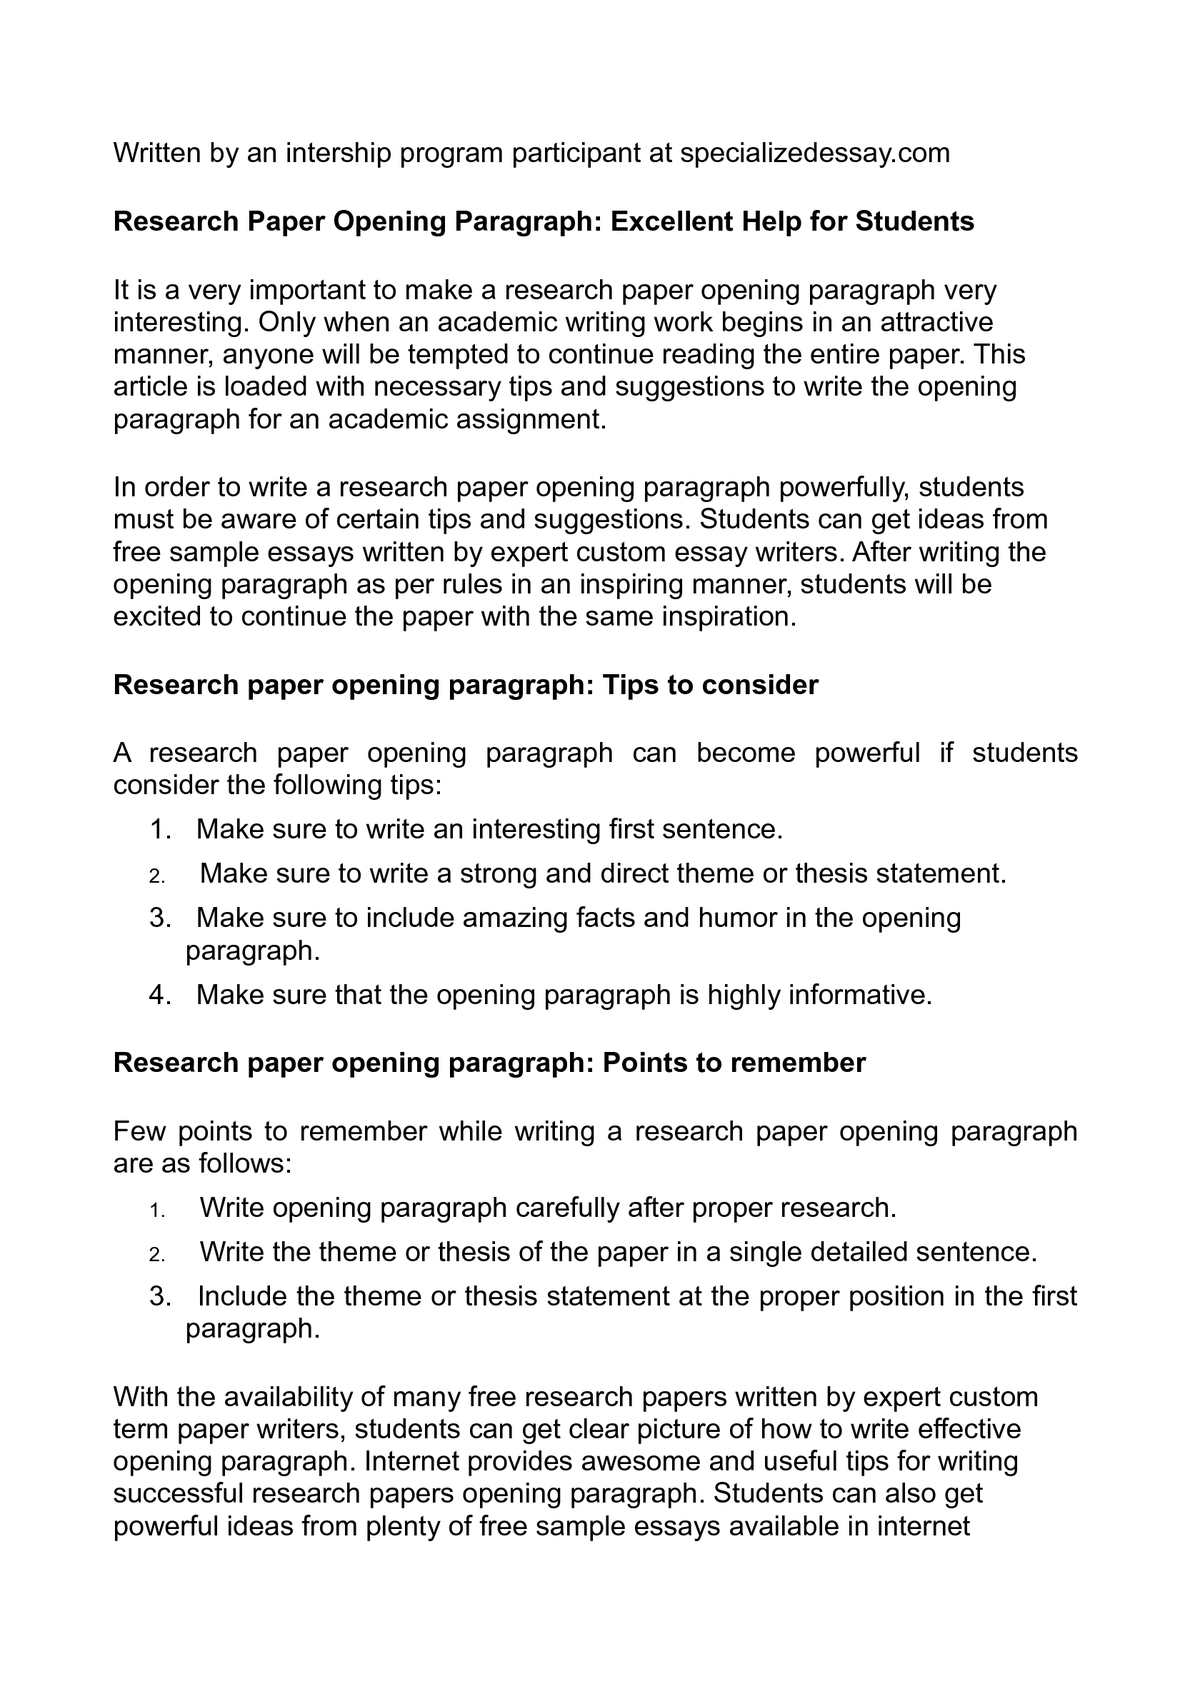 025 P1 Research Paper Free Wonderful Papers Examples Online With Works Cited Website Full